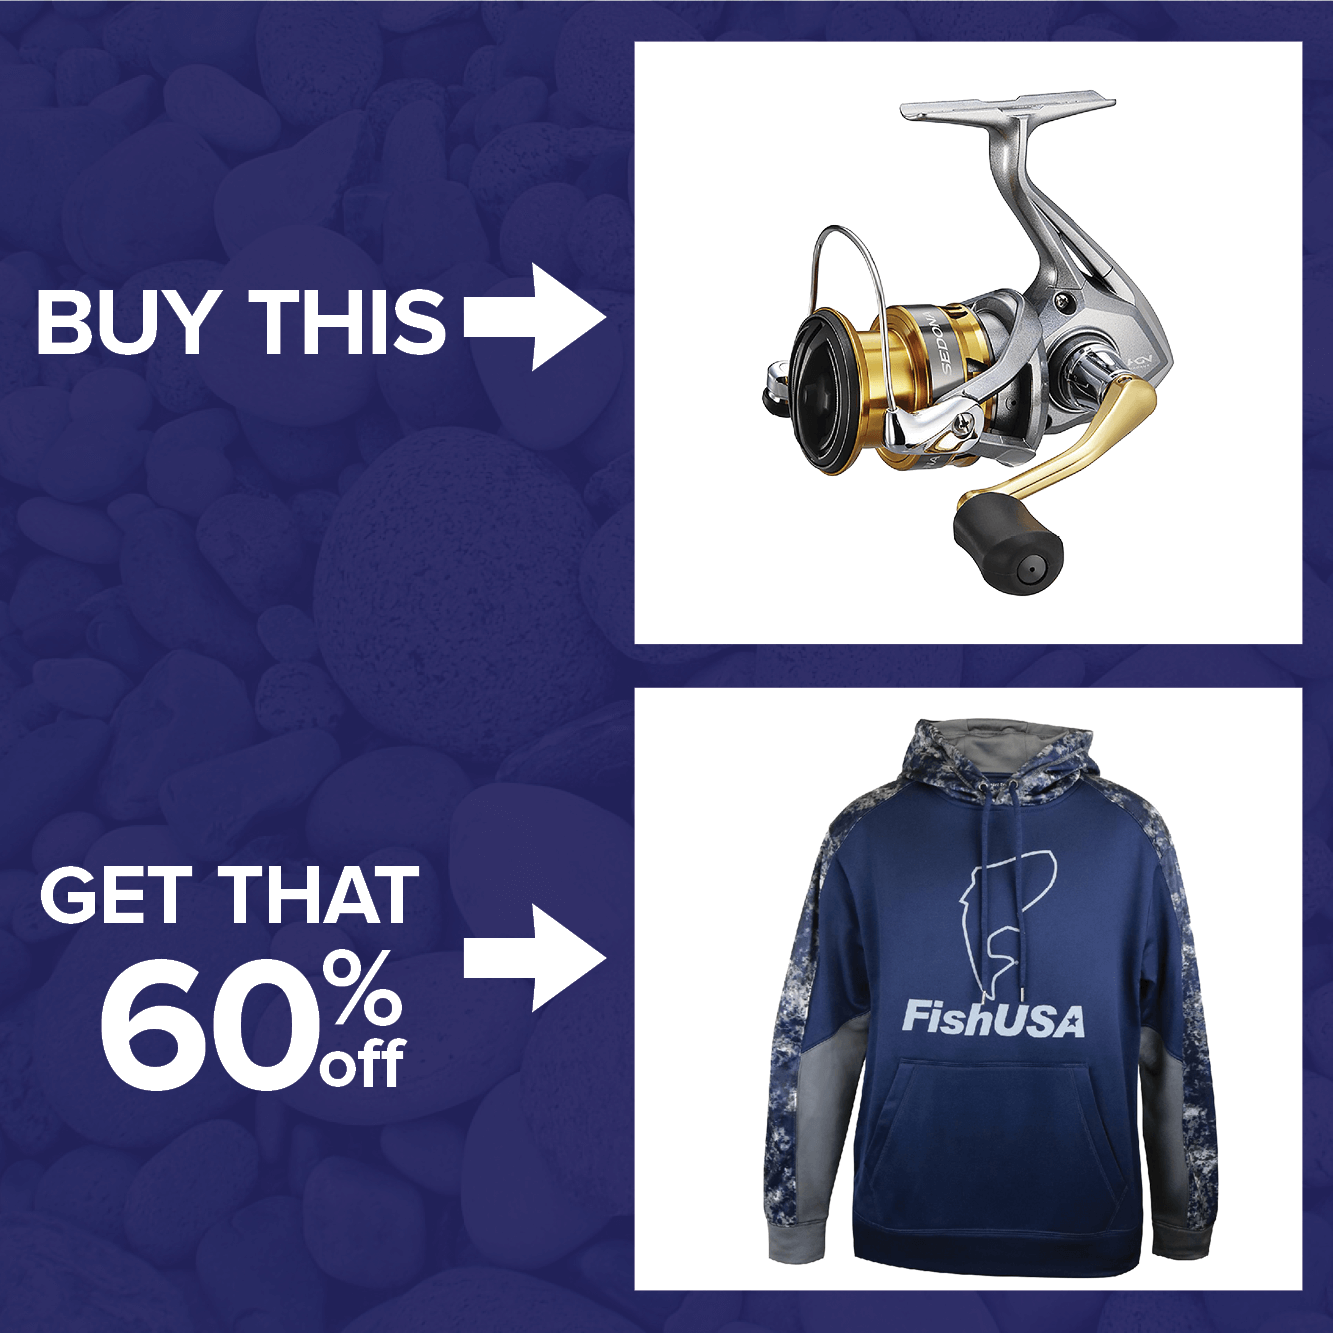 Buy a Shimano Sedona FI Spinning Reel & take 60% off all FishUSA Apparel